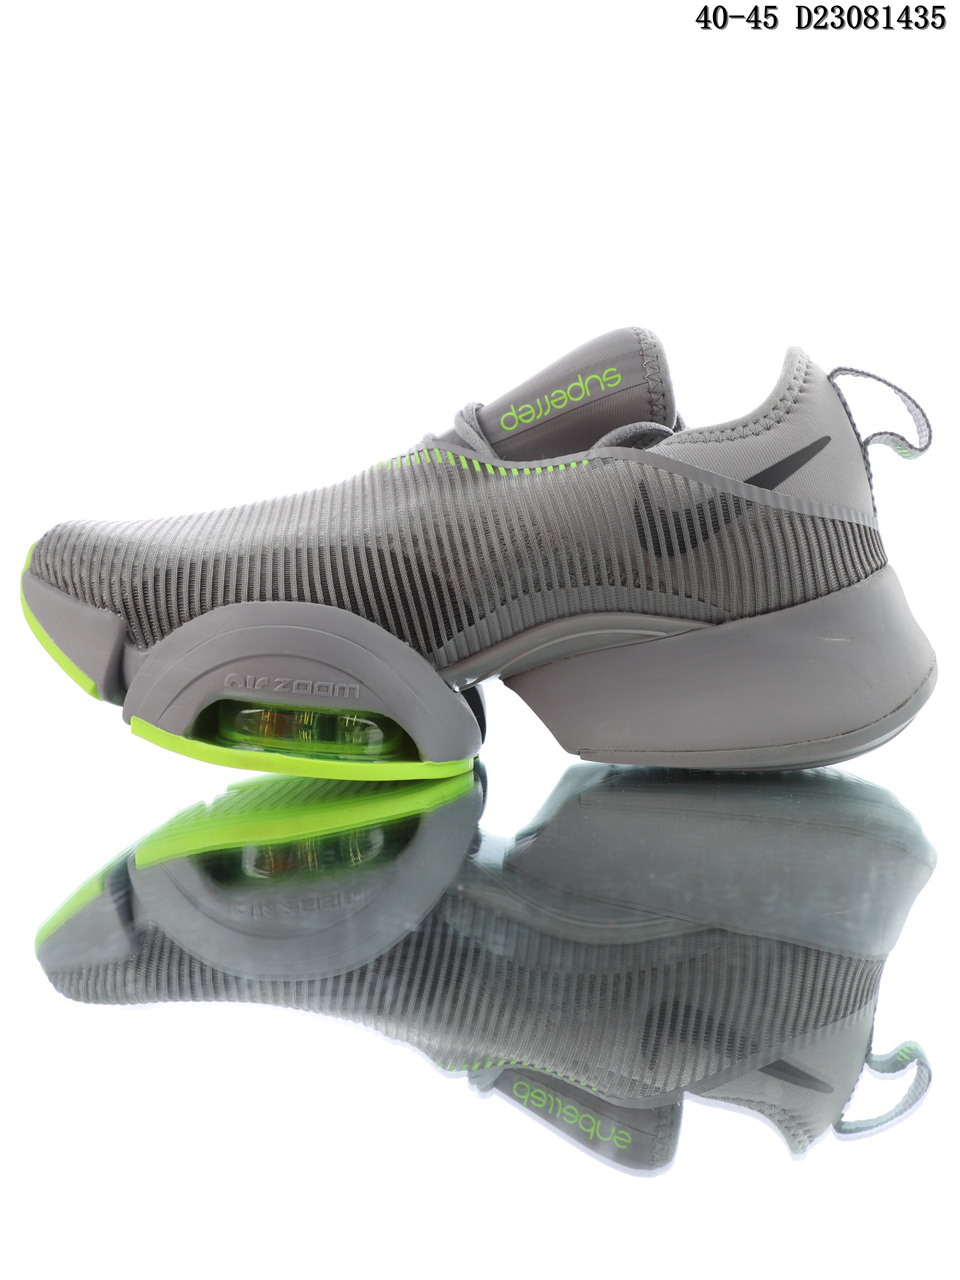 Nike Air Zoom Superrep gray-green cushioned running shoes